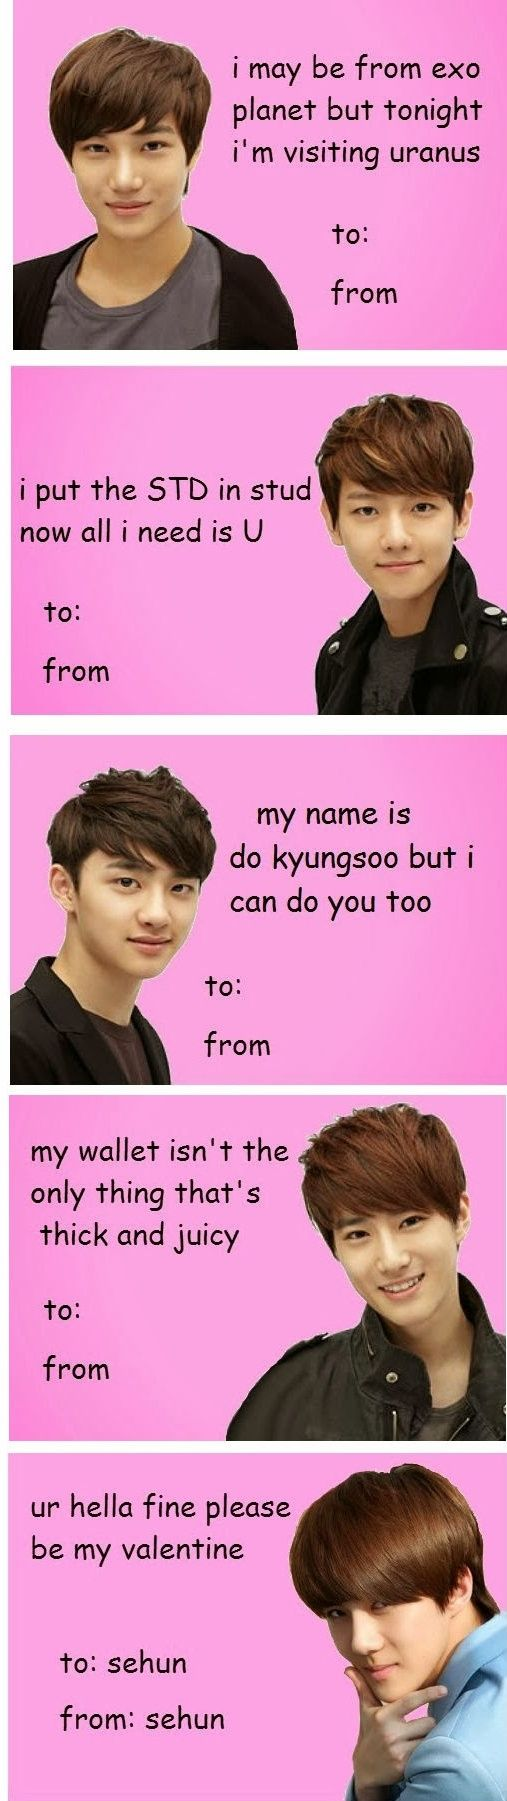 favorite EXO Valentine Cards give one to a kpop friend or send one to yourself like Sehun did lol #Yehet